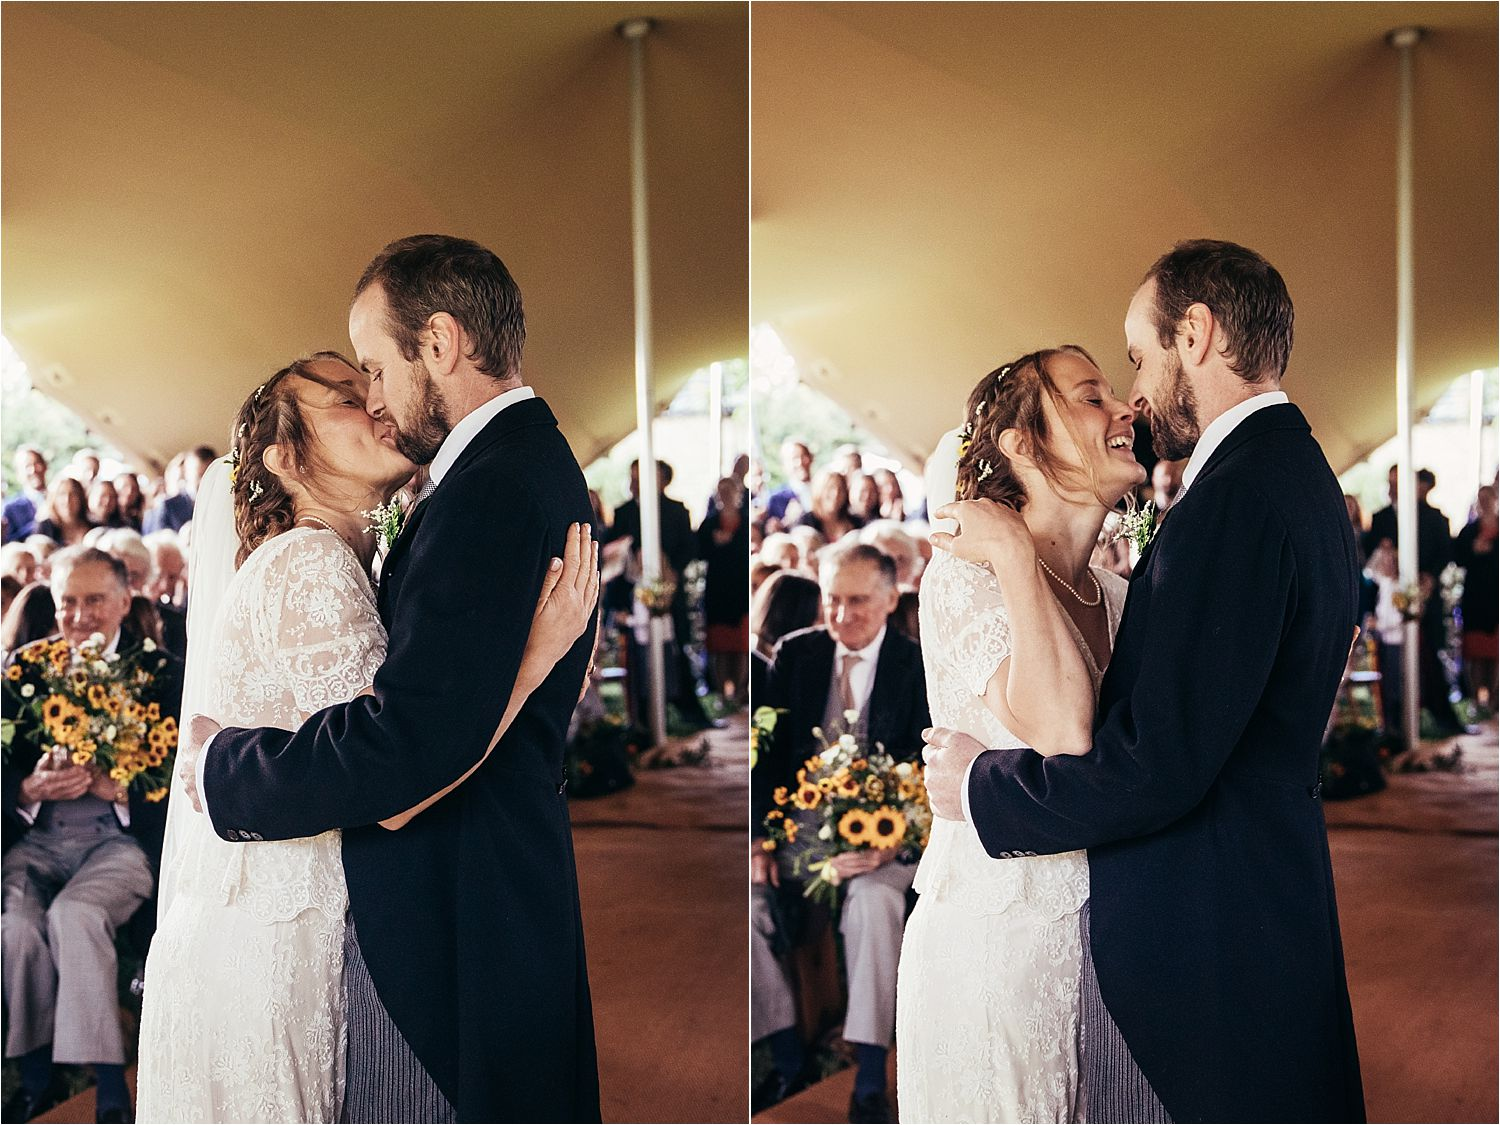 Husband and wife, first kiss in Big Chief Tipi wedding, Manchester